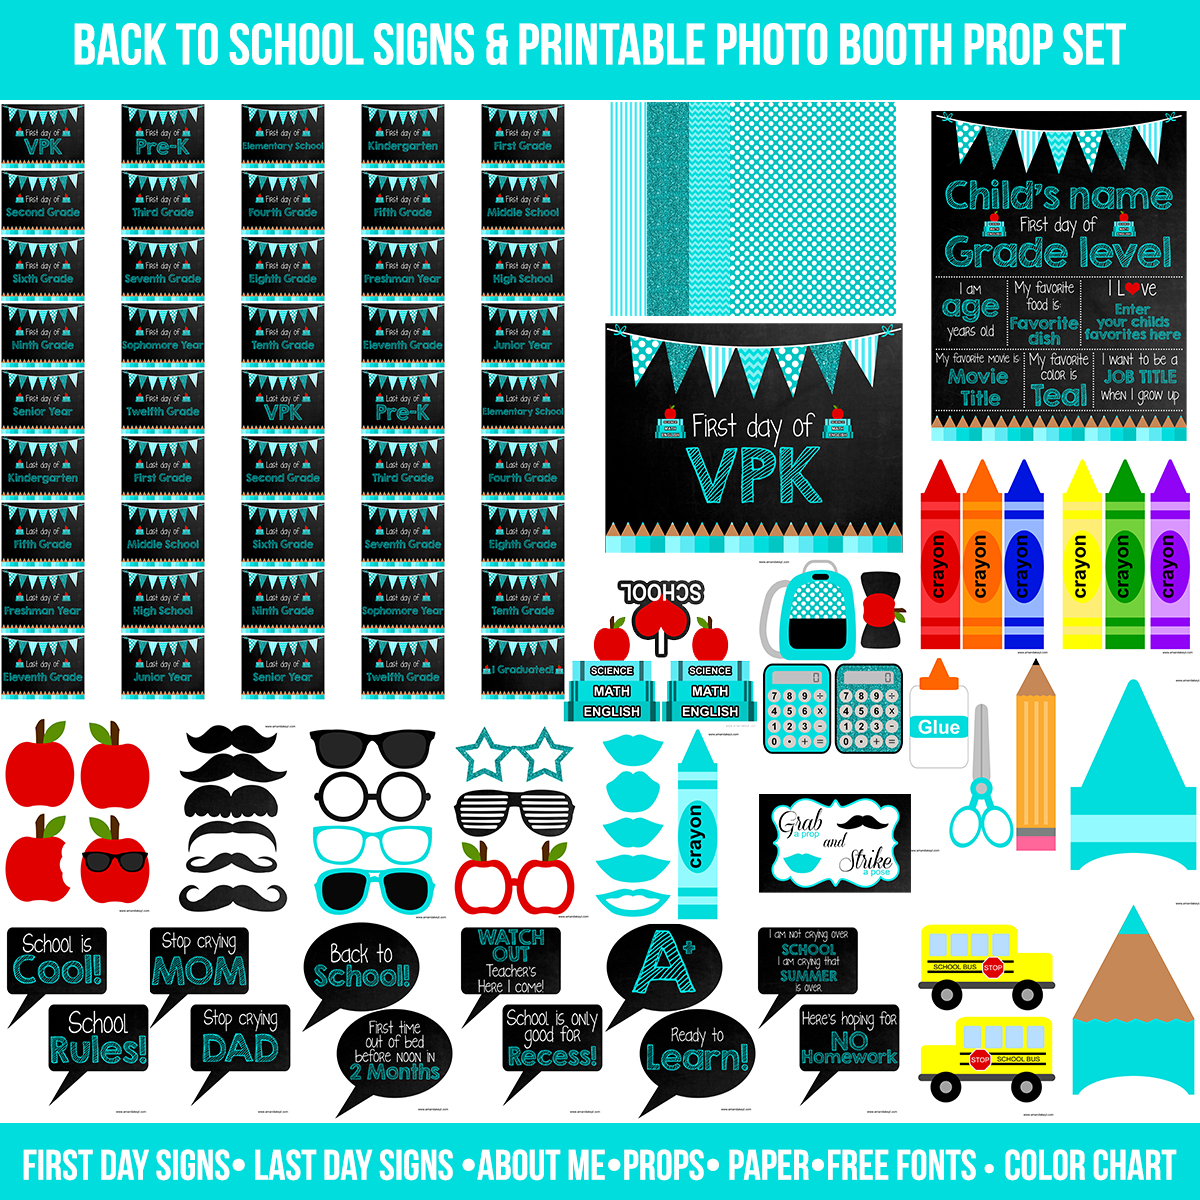 photo regarding Printable Back to School Signs identify Quick Obtain Teal Initial and Very last Working day of Faculty Signs or symptoms Printable Photograph Booth Prop Preset Amanda Keyt Printable Models